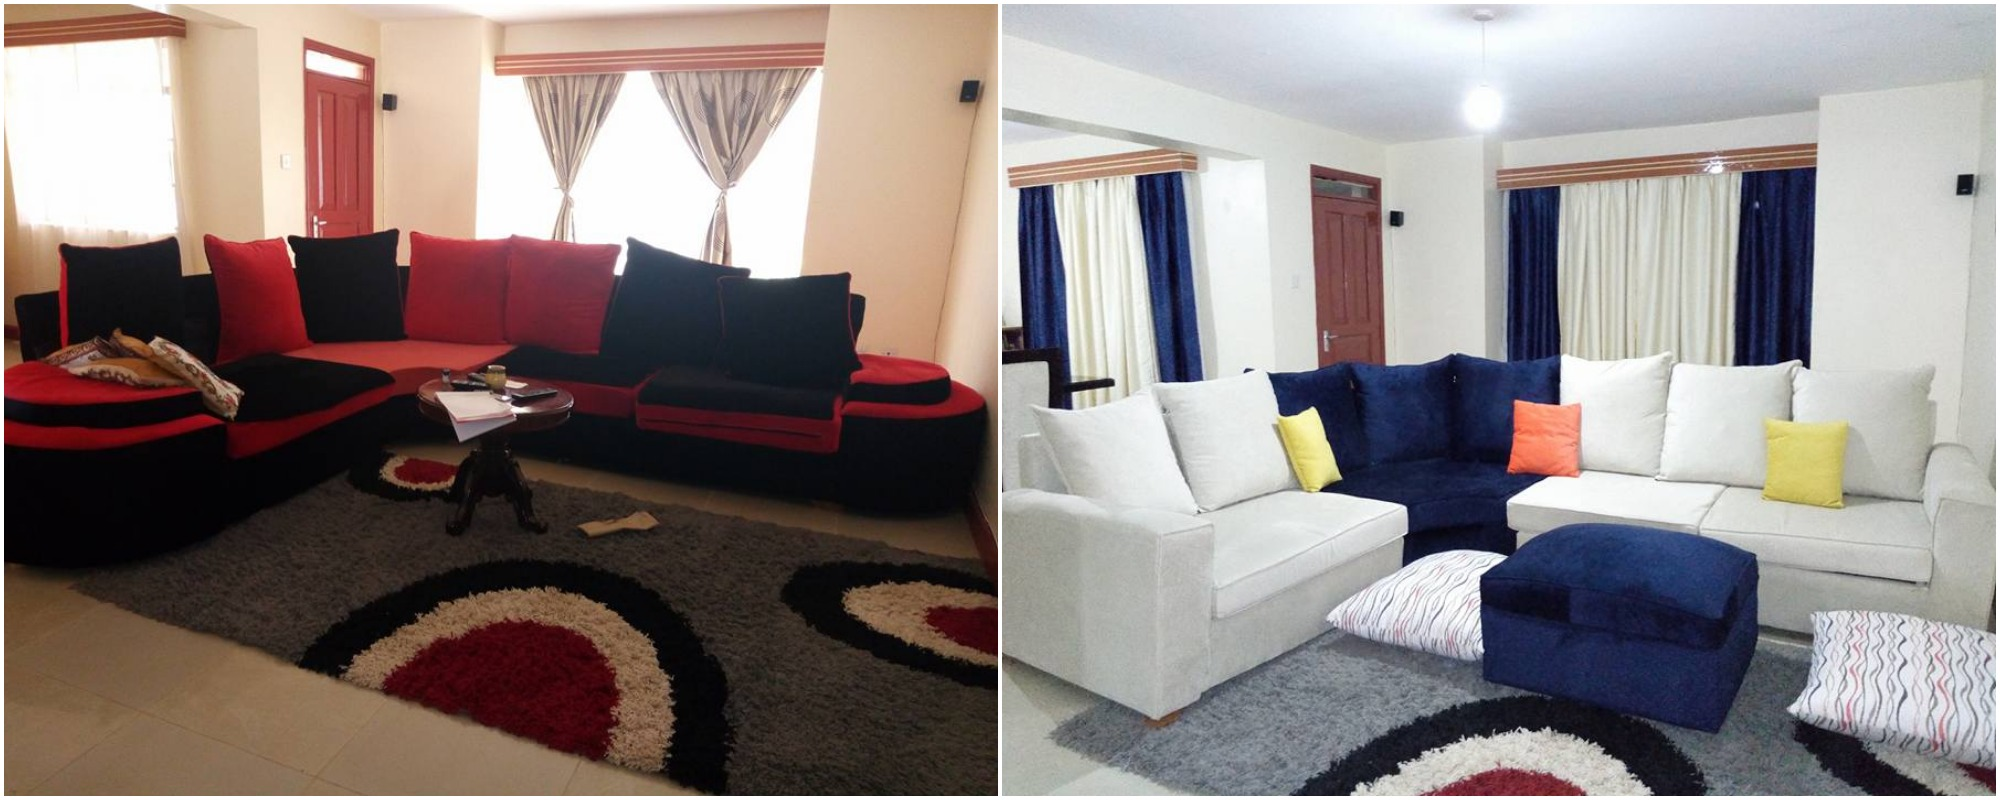 Self Taught Interior Designer With A Magic Touch Business Today Kenya